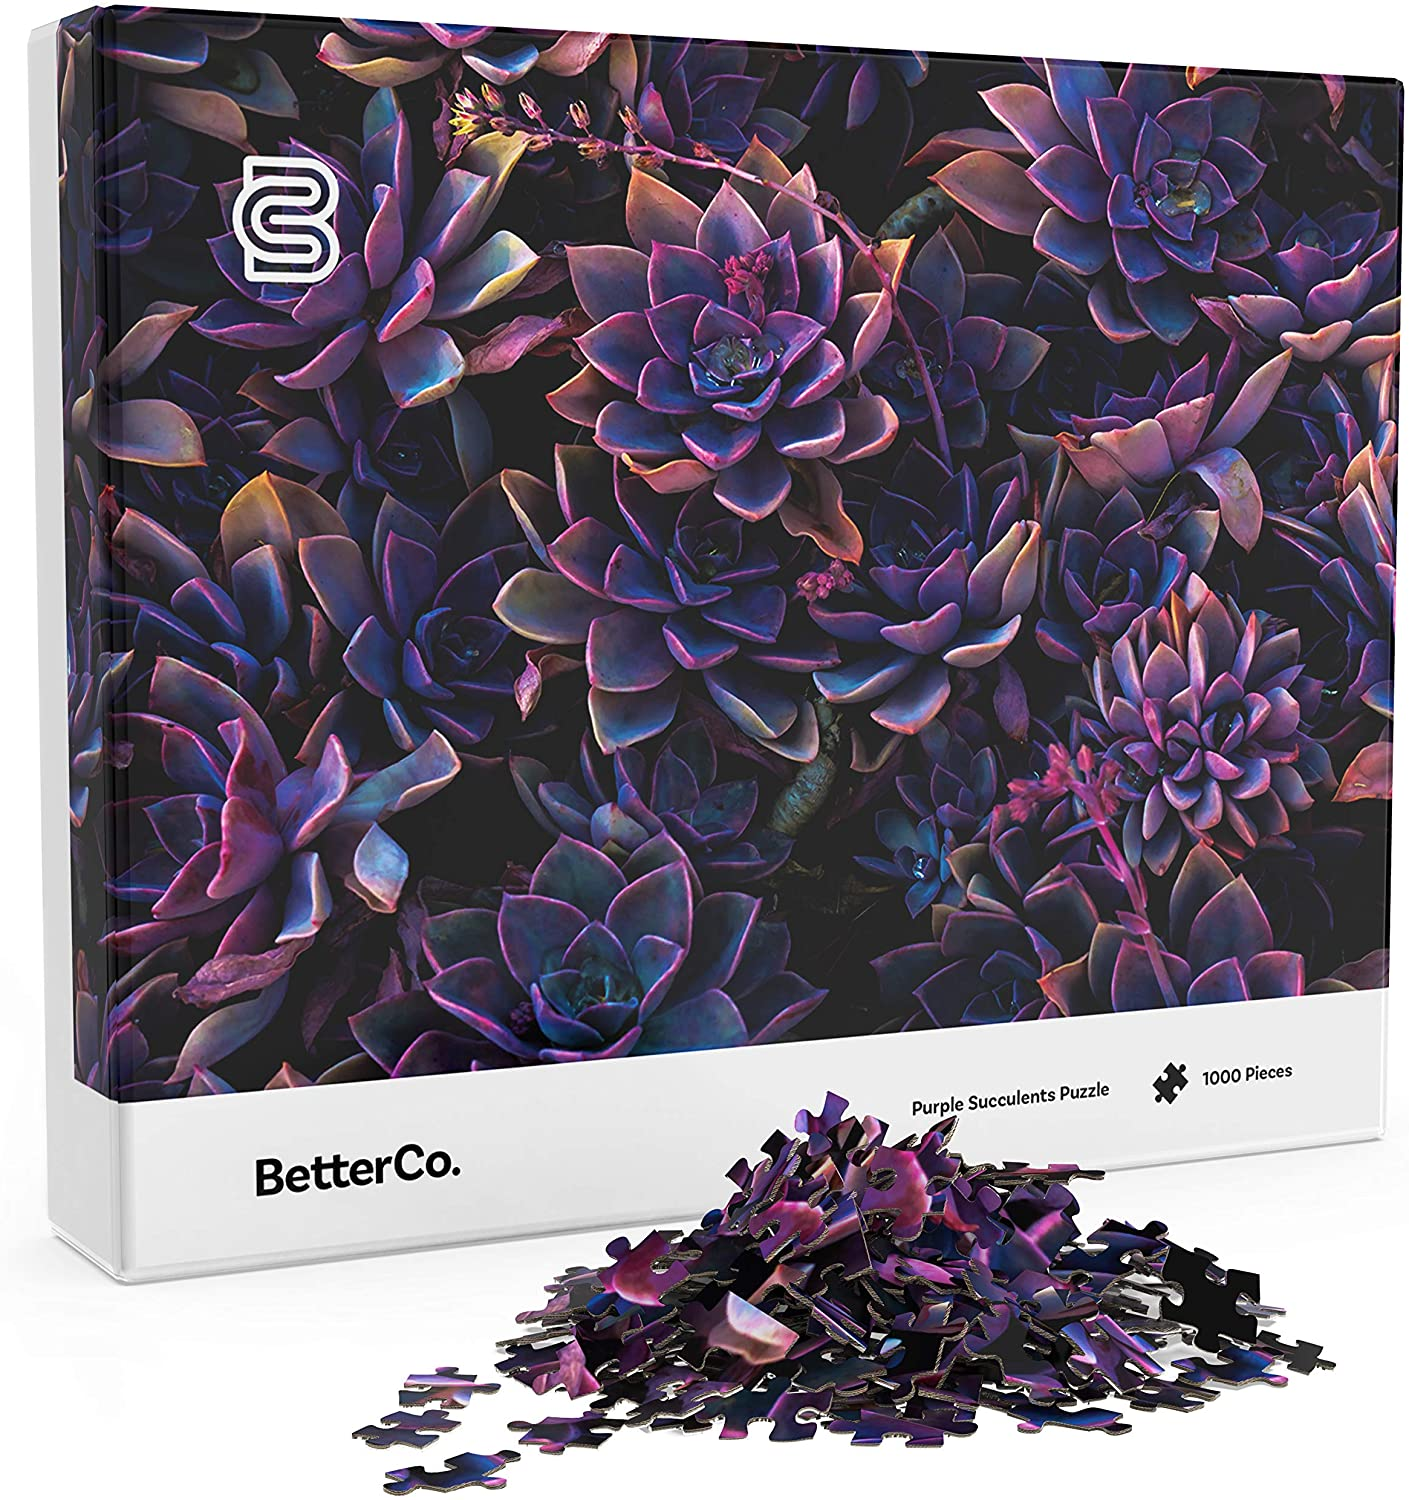 Purple Succulents 1000 Piece Jigsaw Puzzle - Challenge Yourself with 1000 Piece Puzzles for Adults, Teens, and Kids (Purple Succulents)